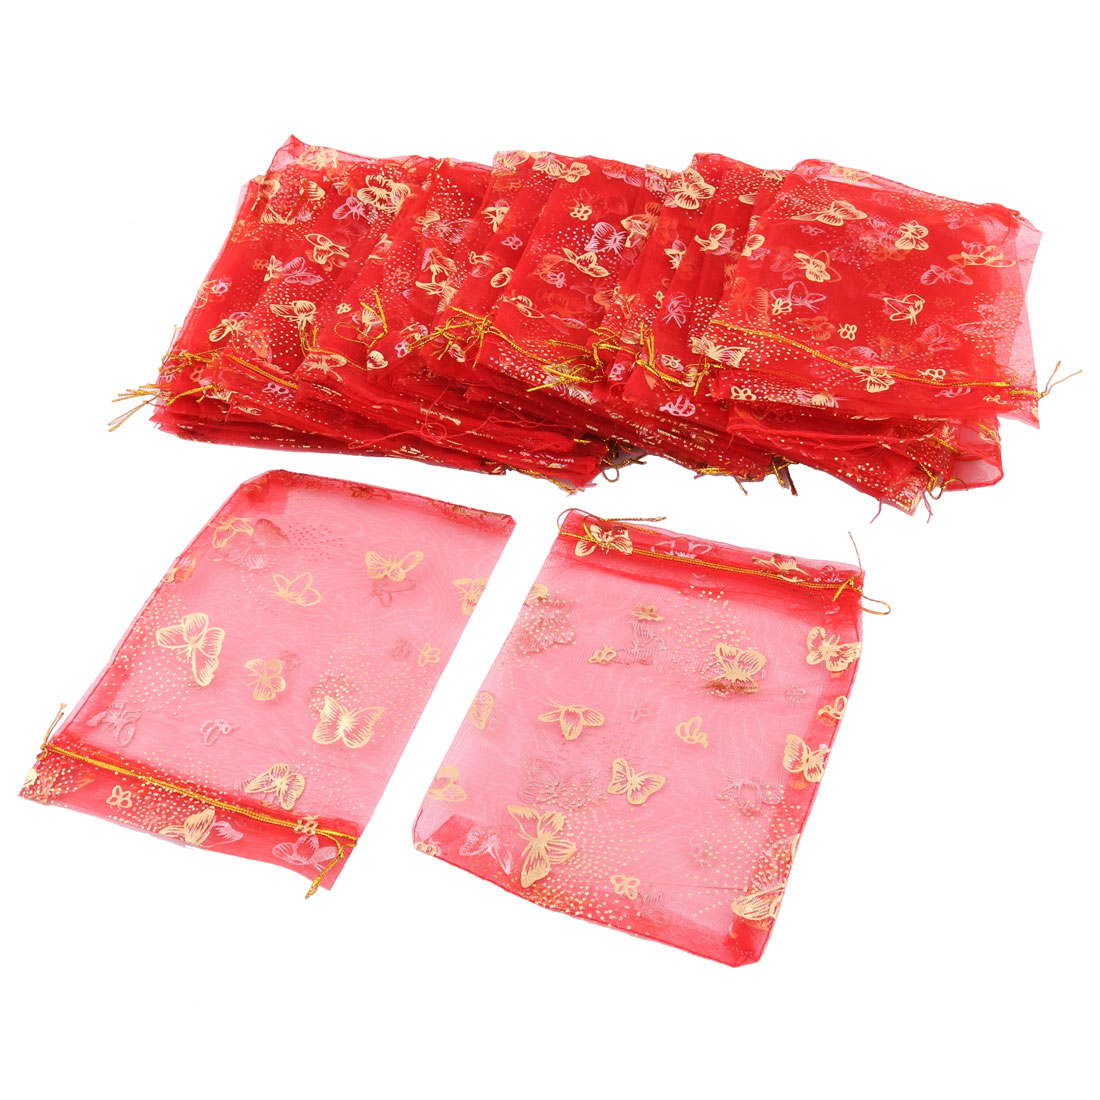 jewelry pouches gift organza bags 50 pcs